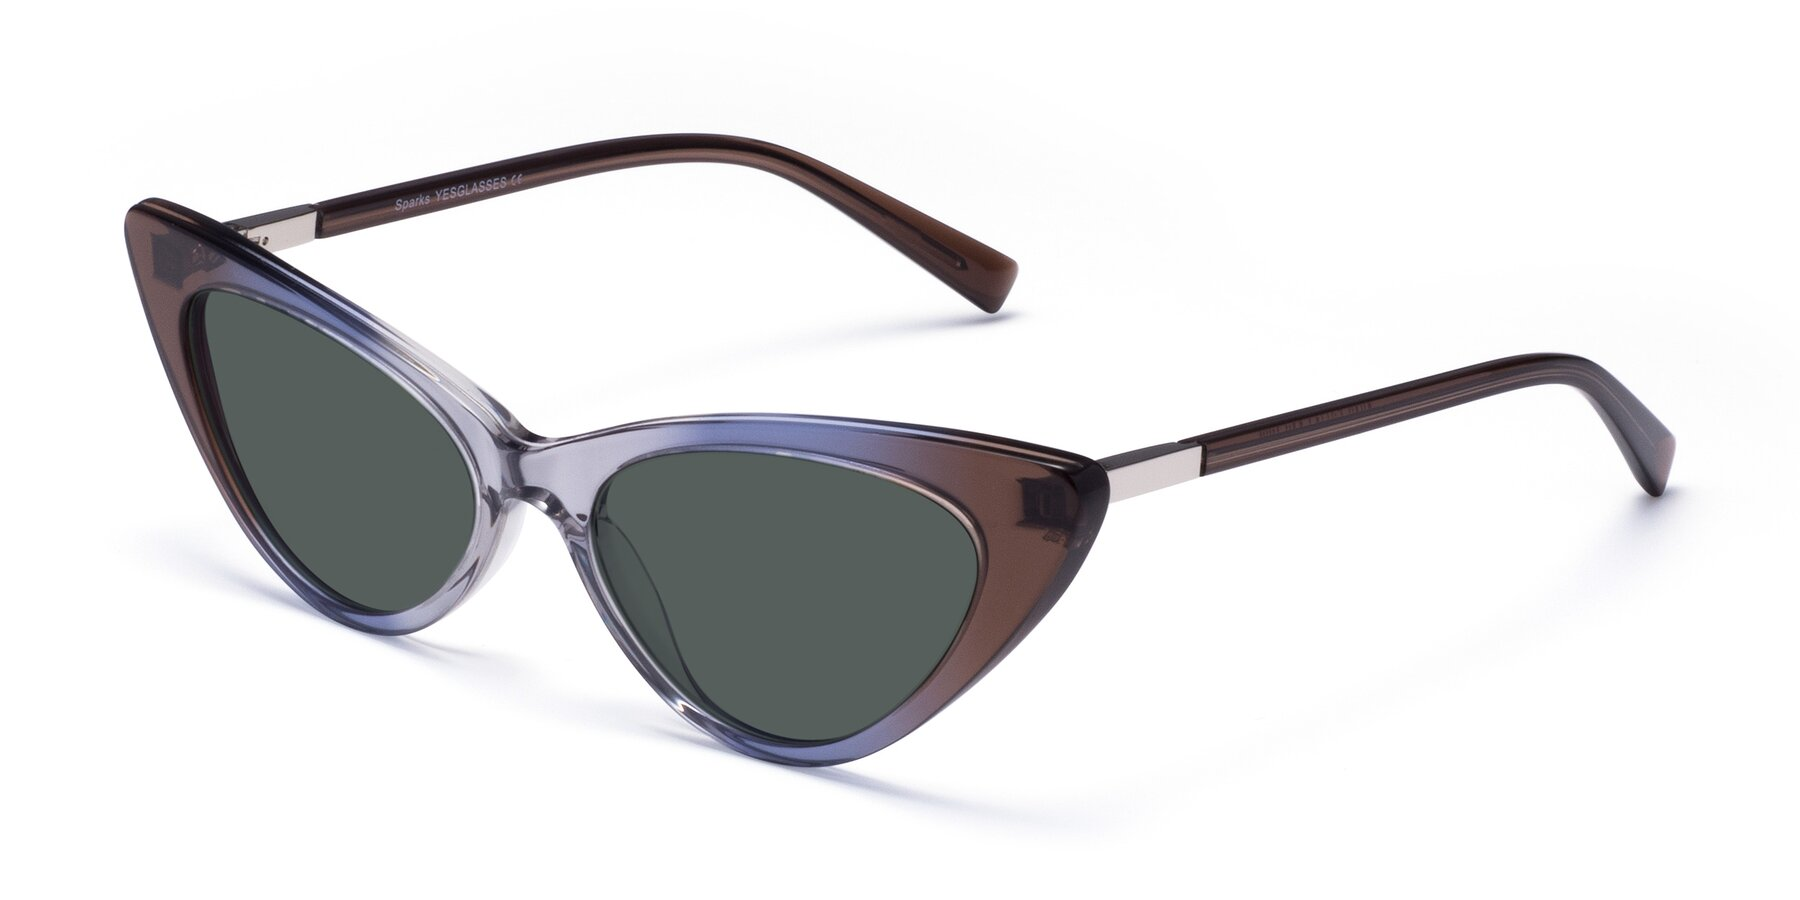 Angle of Sparks in Transparent Gradient Brown with Gray Polarized Lenses